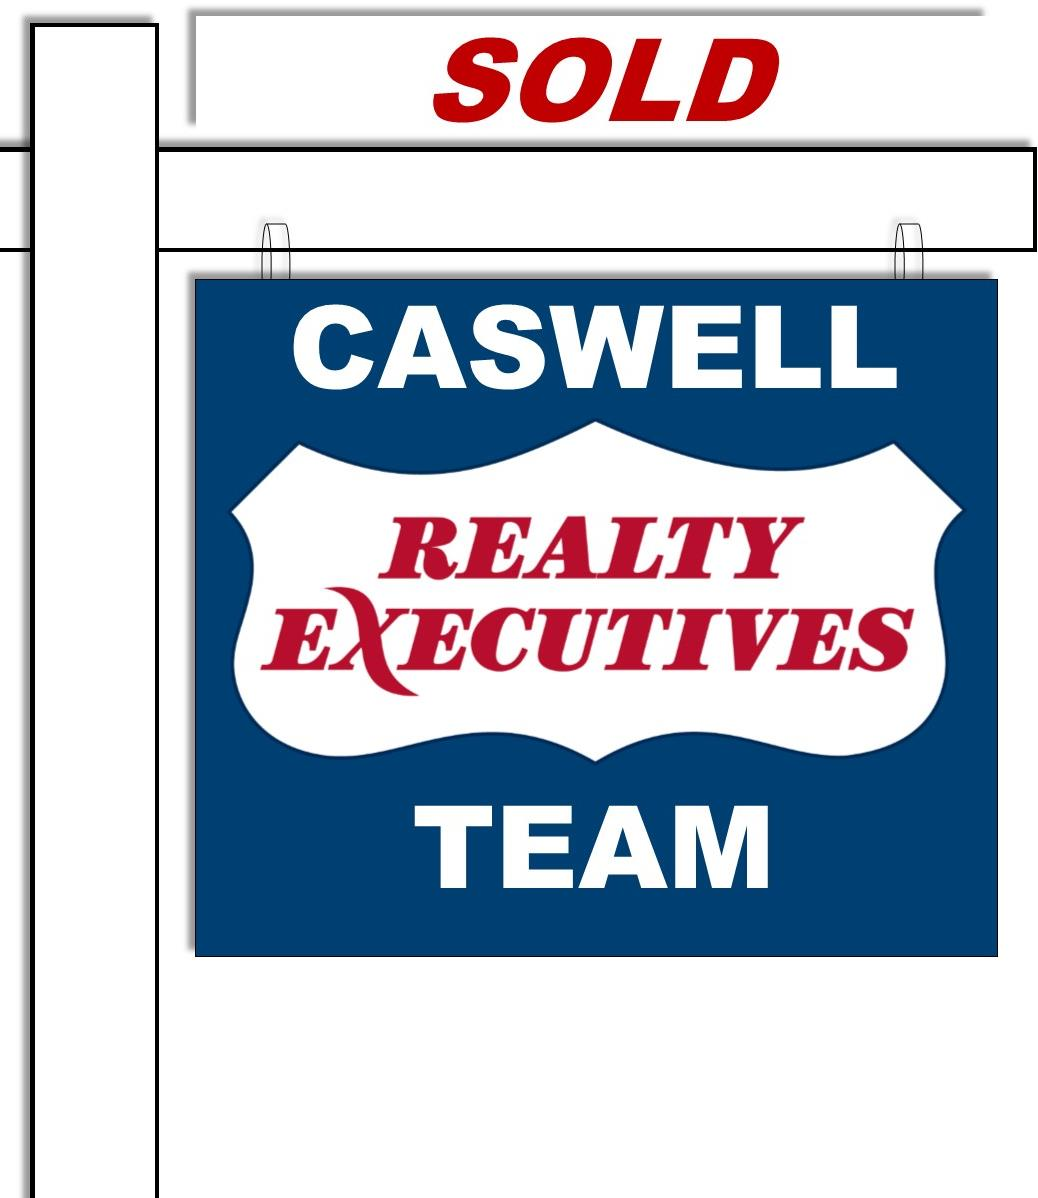 The Caswell Team